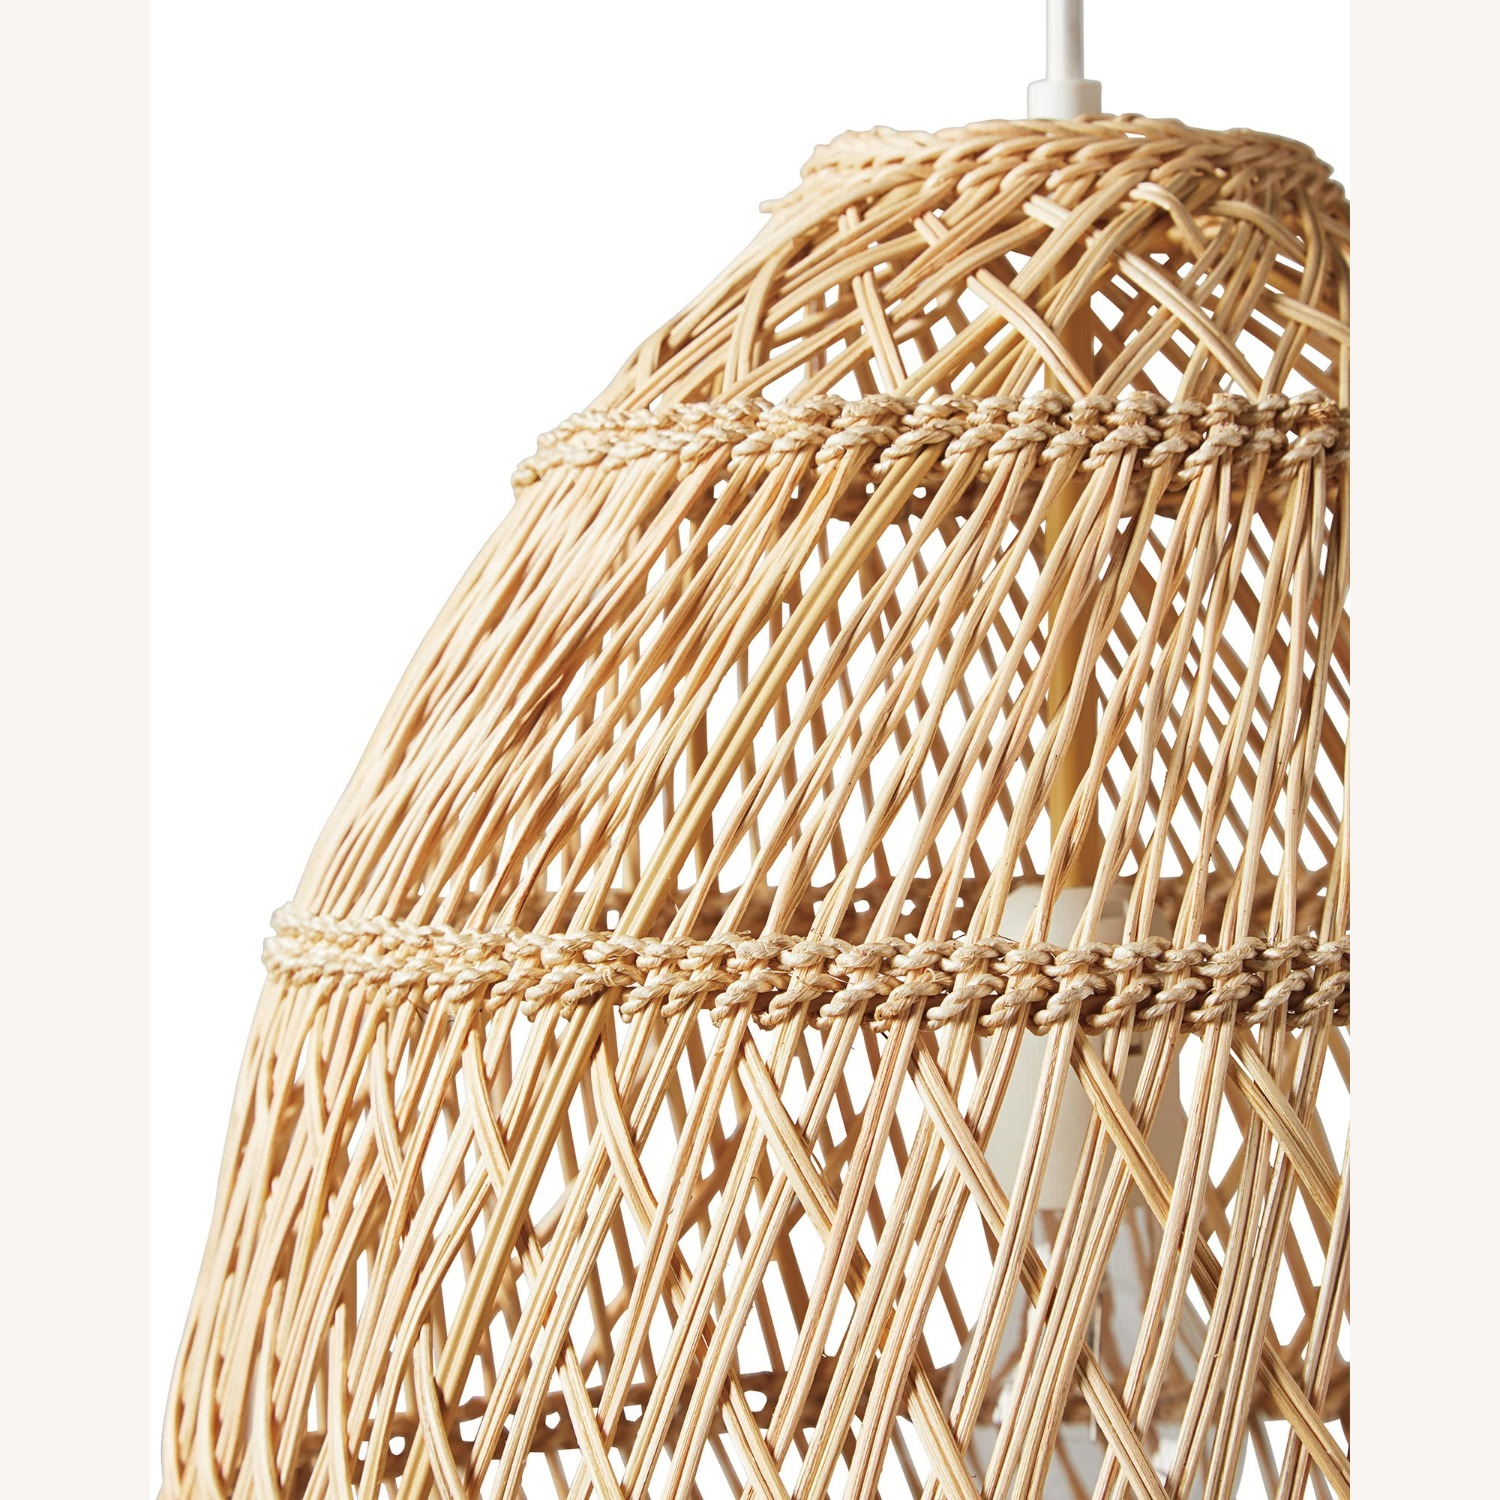 Serena and Lily Rattan Ceiling Light Pendants (2) - image-3